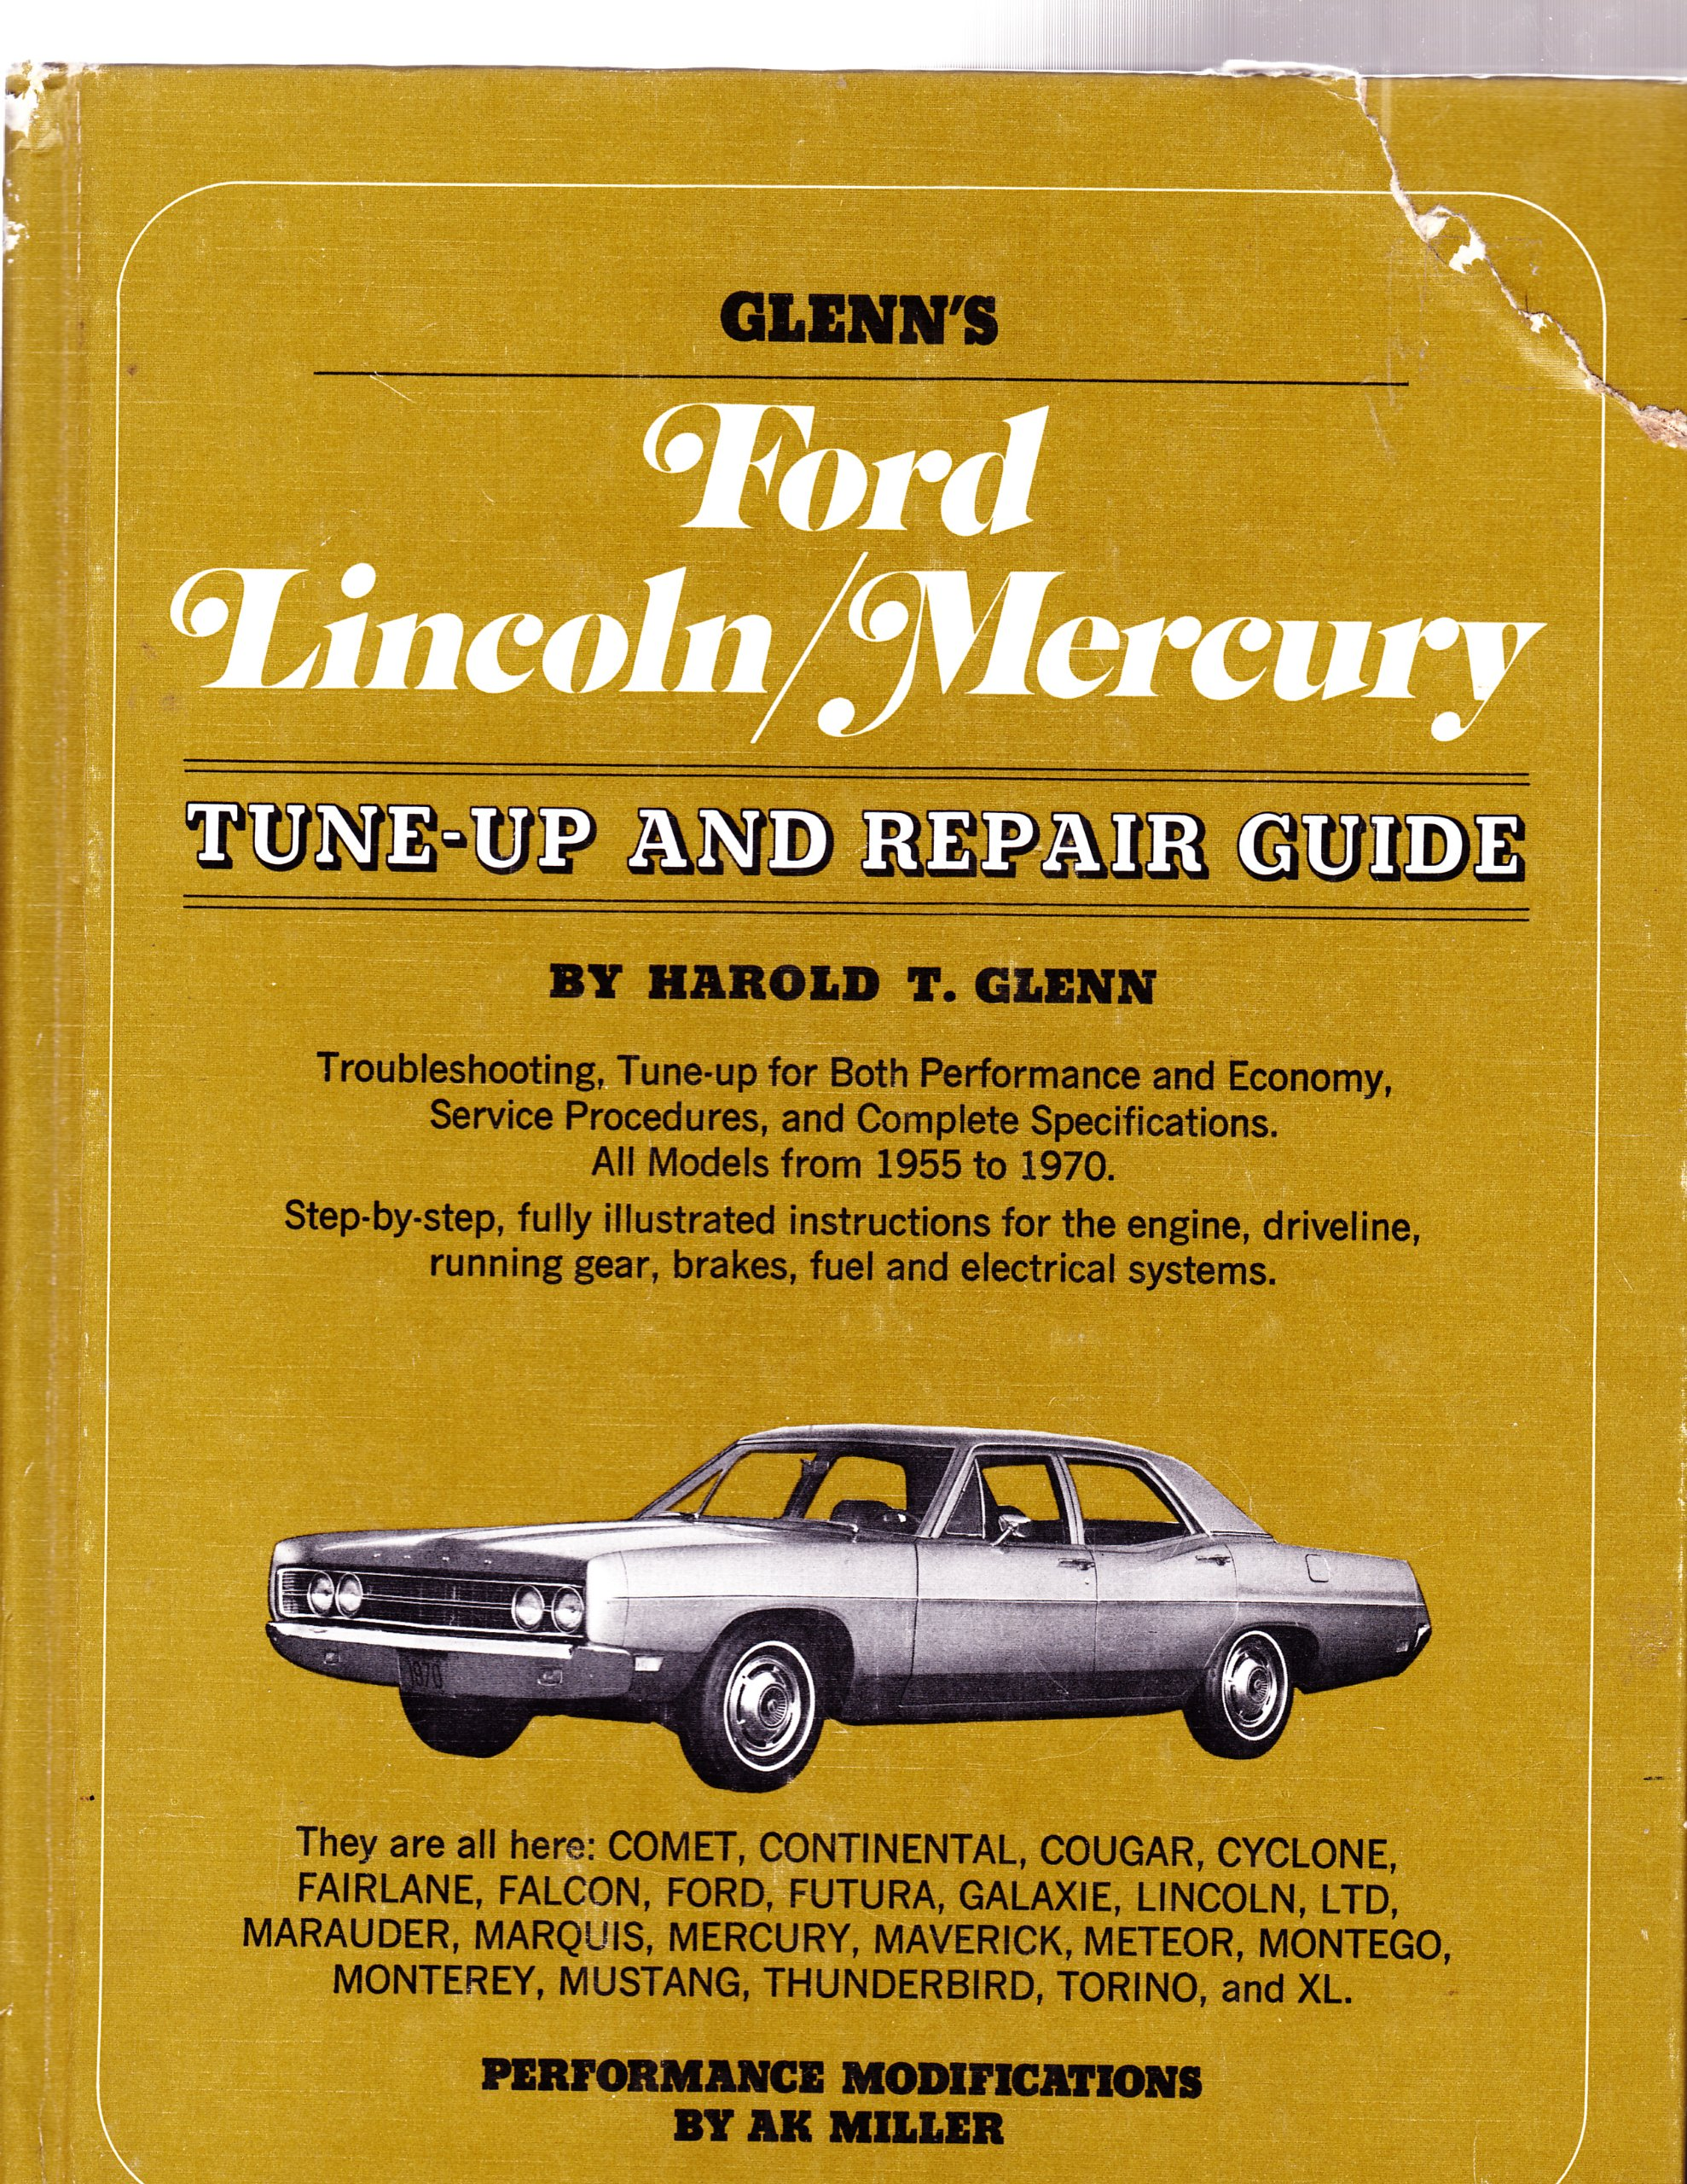 Glenns ford lincoln mercury tune up and repair guide harold t glenn amazon com books